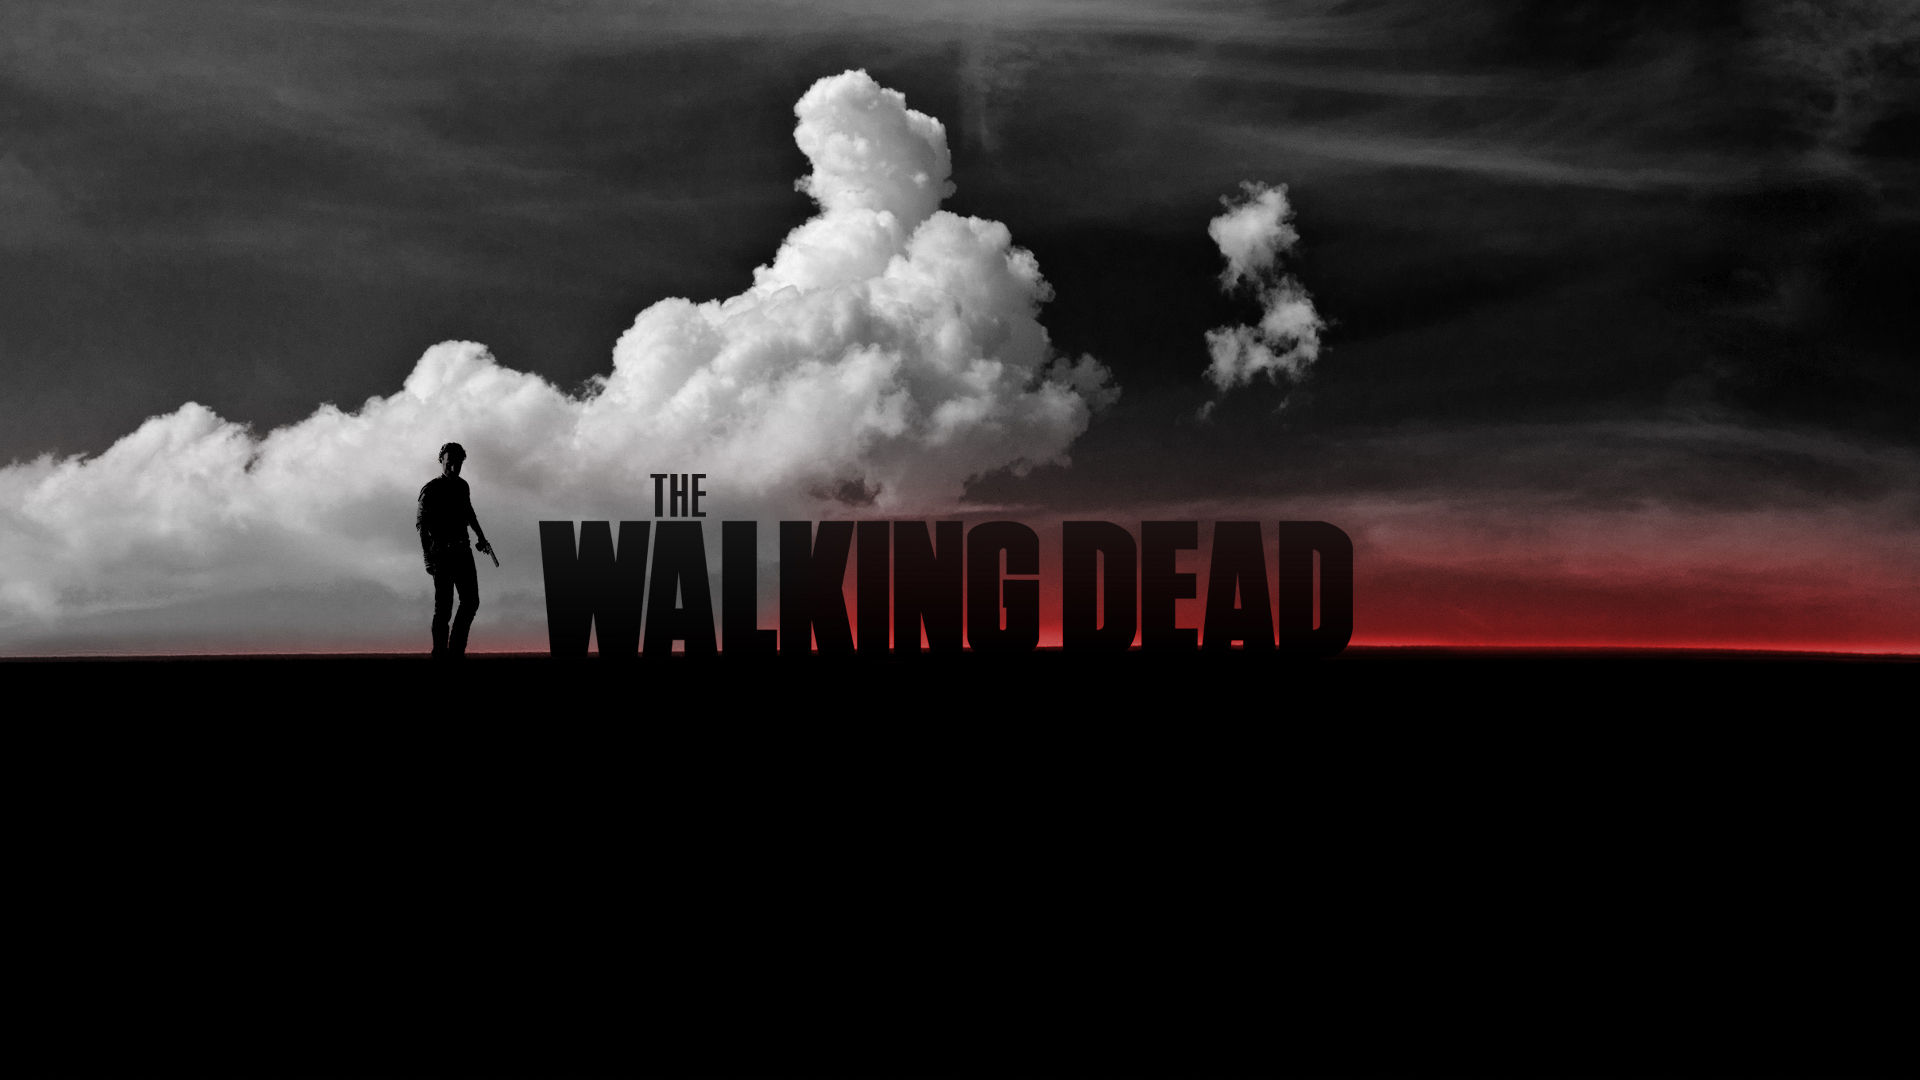 a walking dead wallpaper i did a few years ago : thewalkingdead